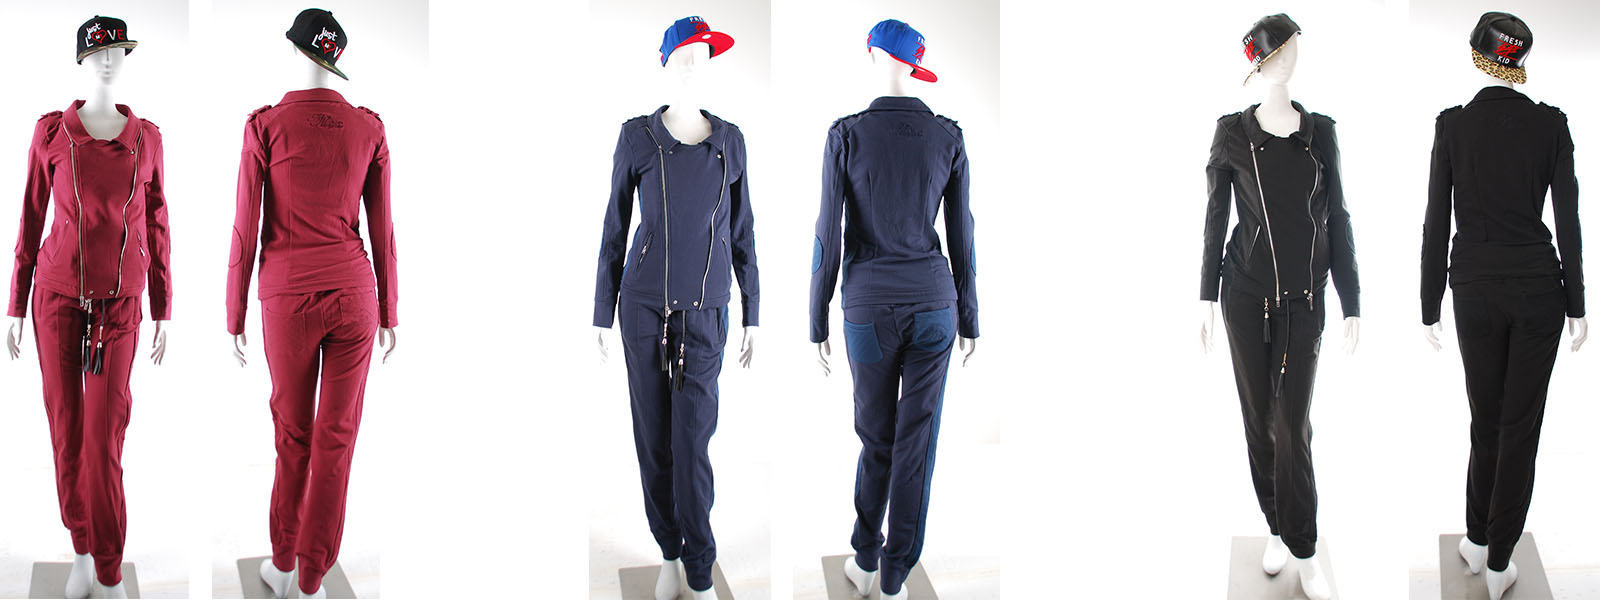 Nickelson tracksuit wholesale